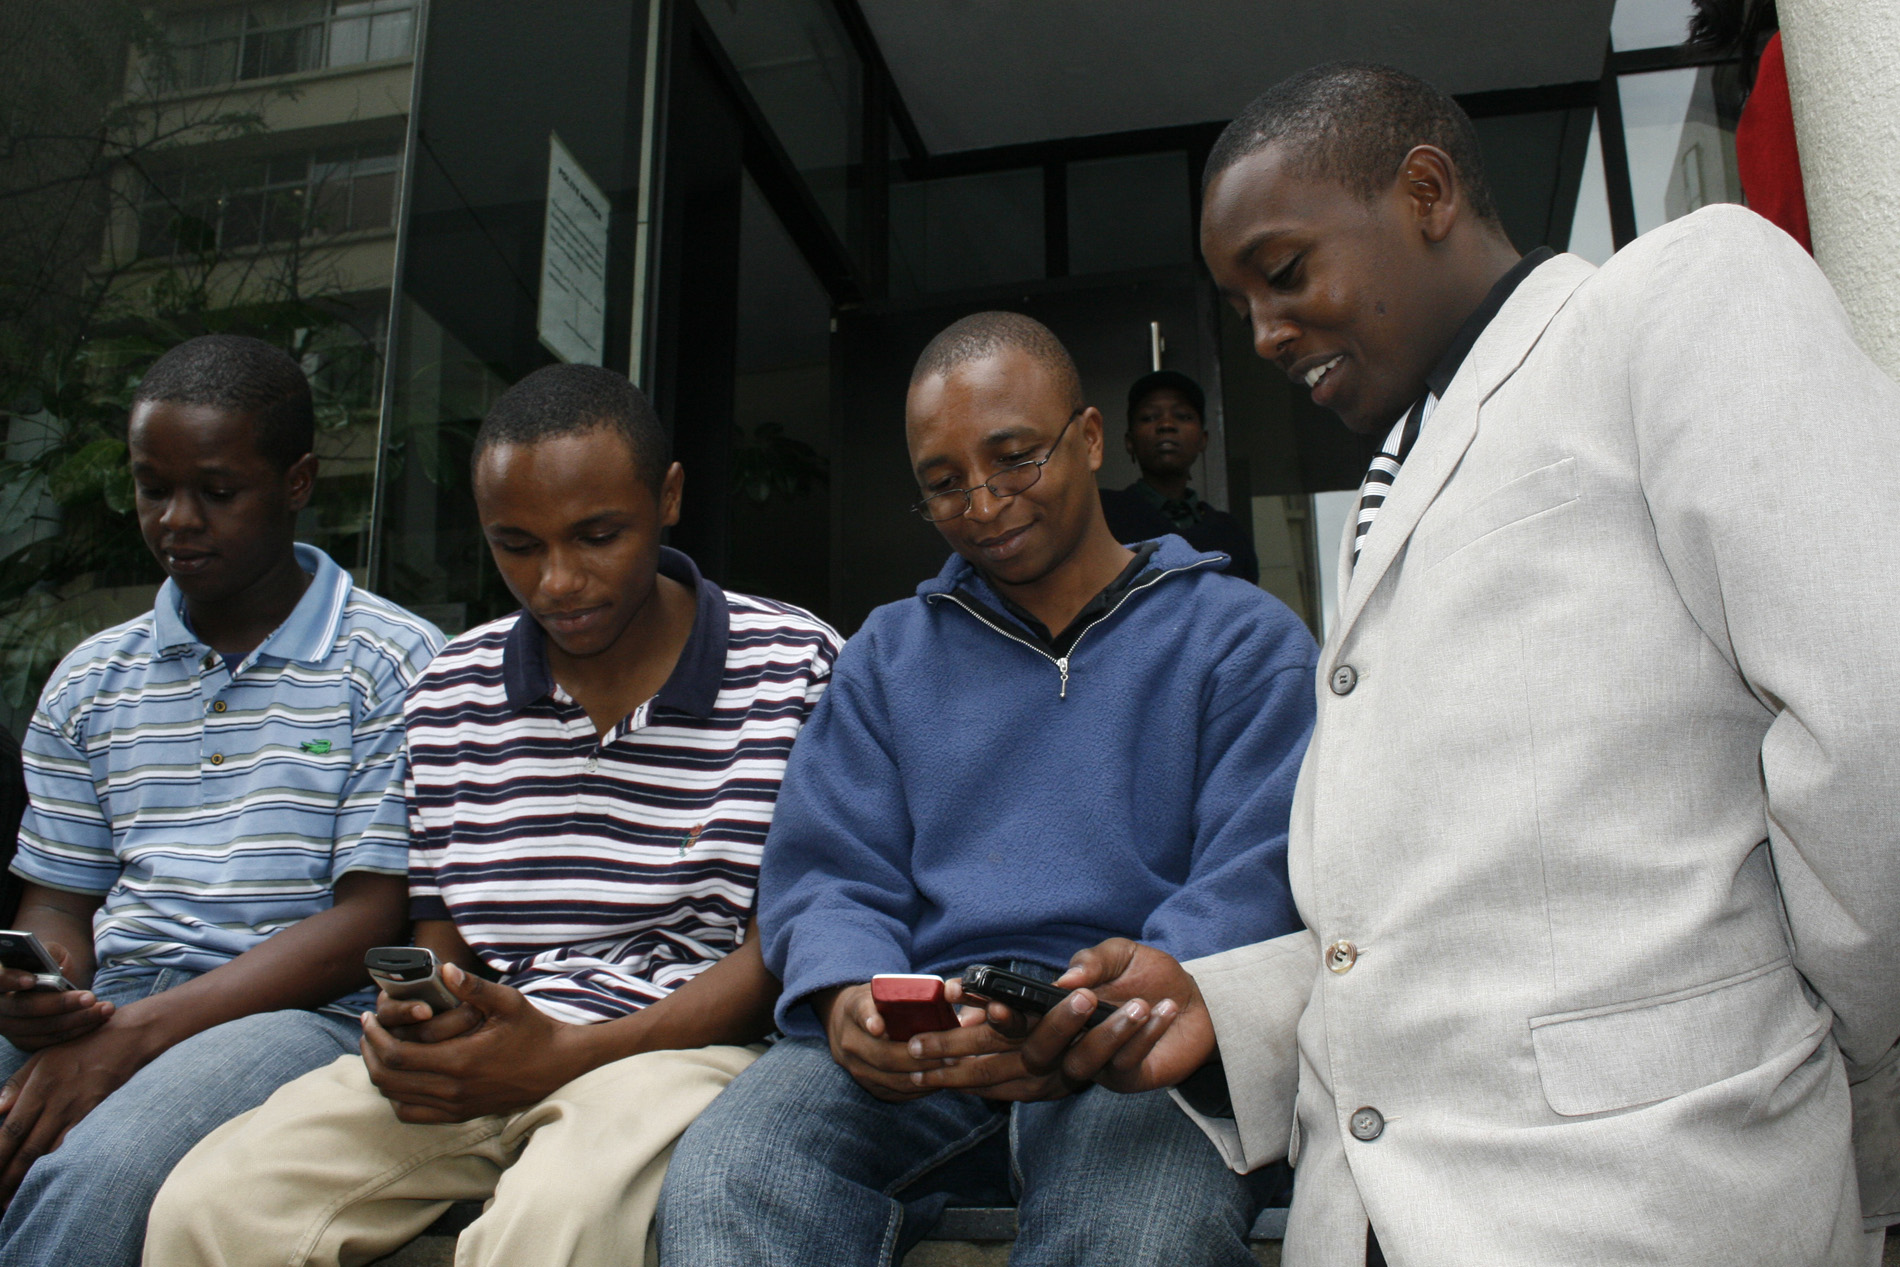 New app competition encourages technology entrepreneurs in Kenya